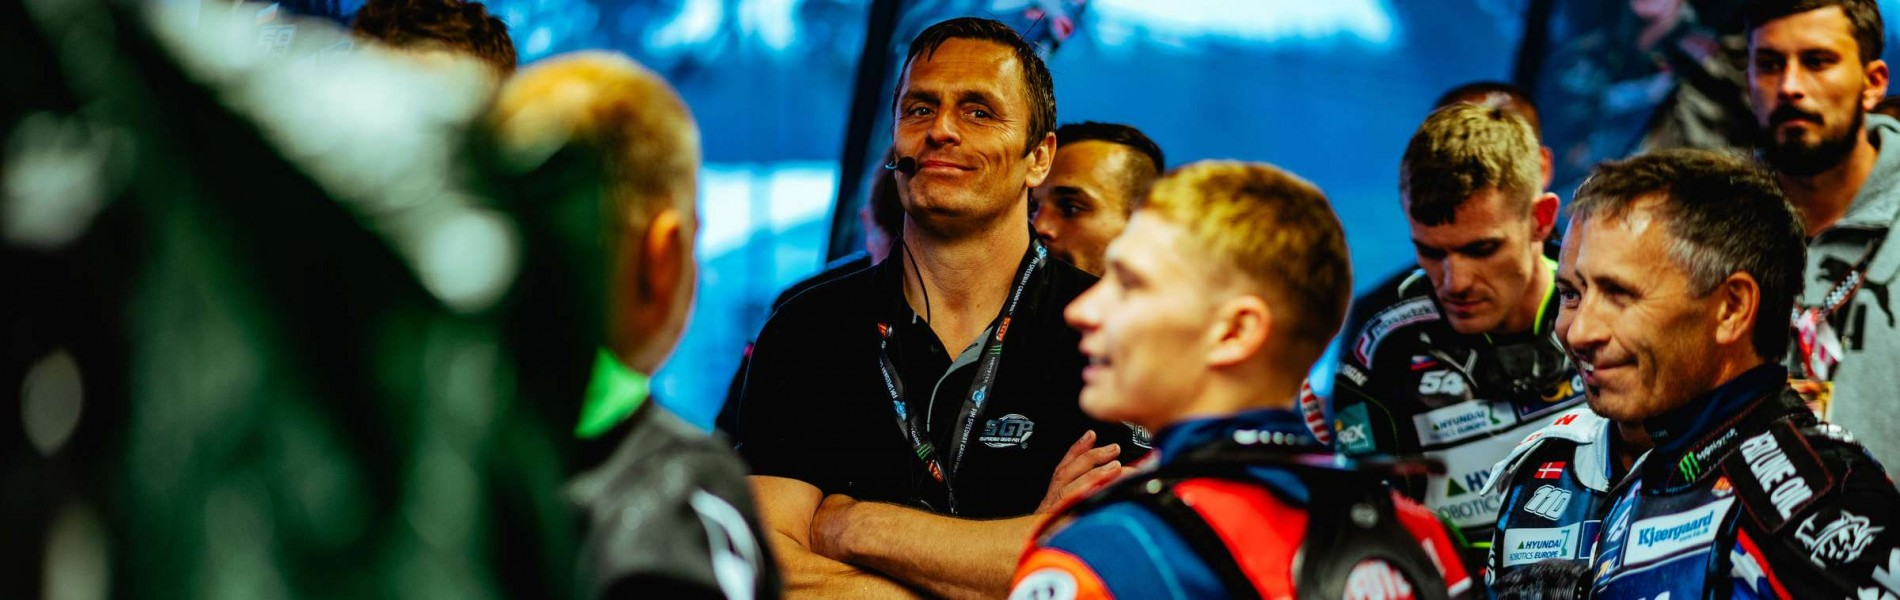 Images of Speedway Grand Prix Race Director Phil Morris from the Scandinavian GP